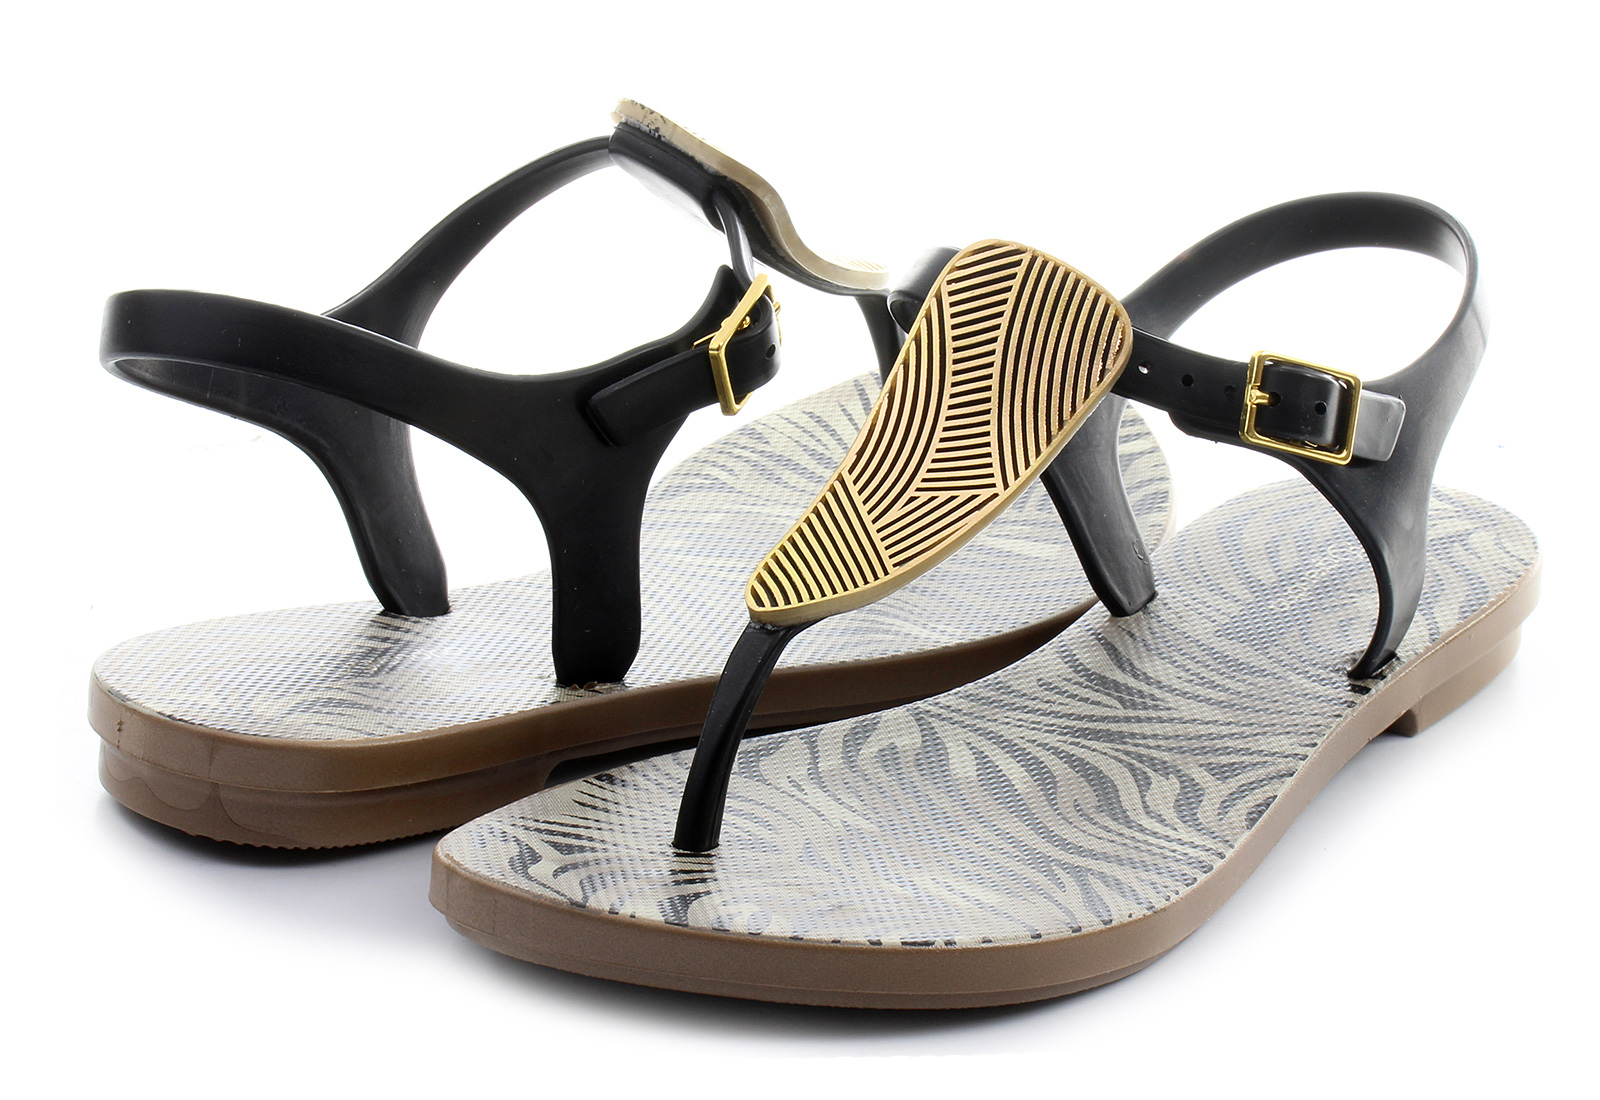 Grendha Sandals - Savannah Sandal - 81536-23353